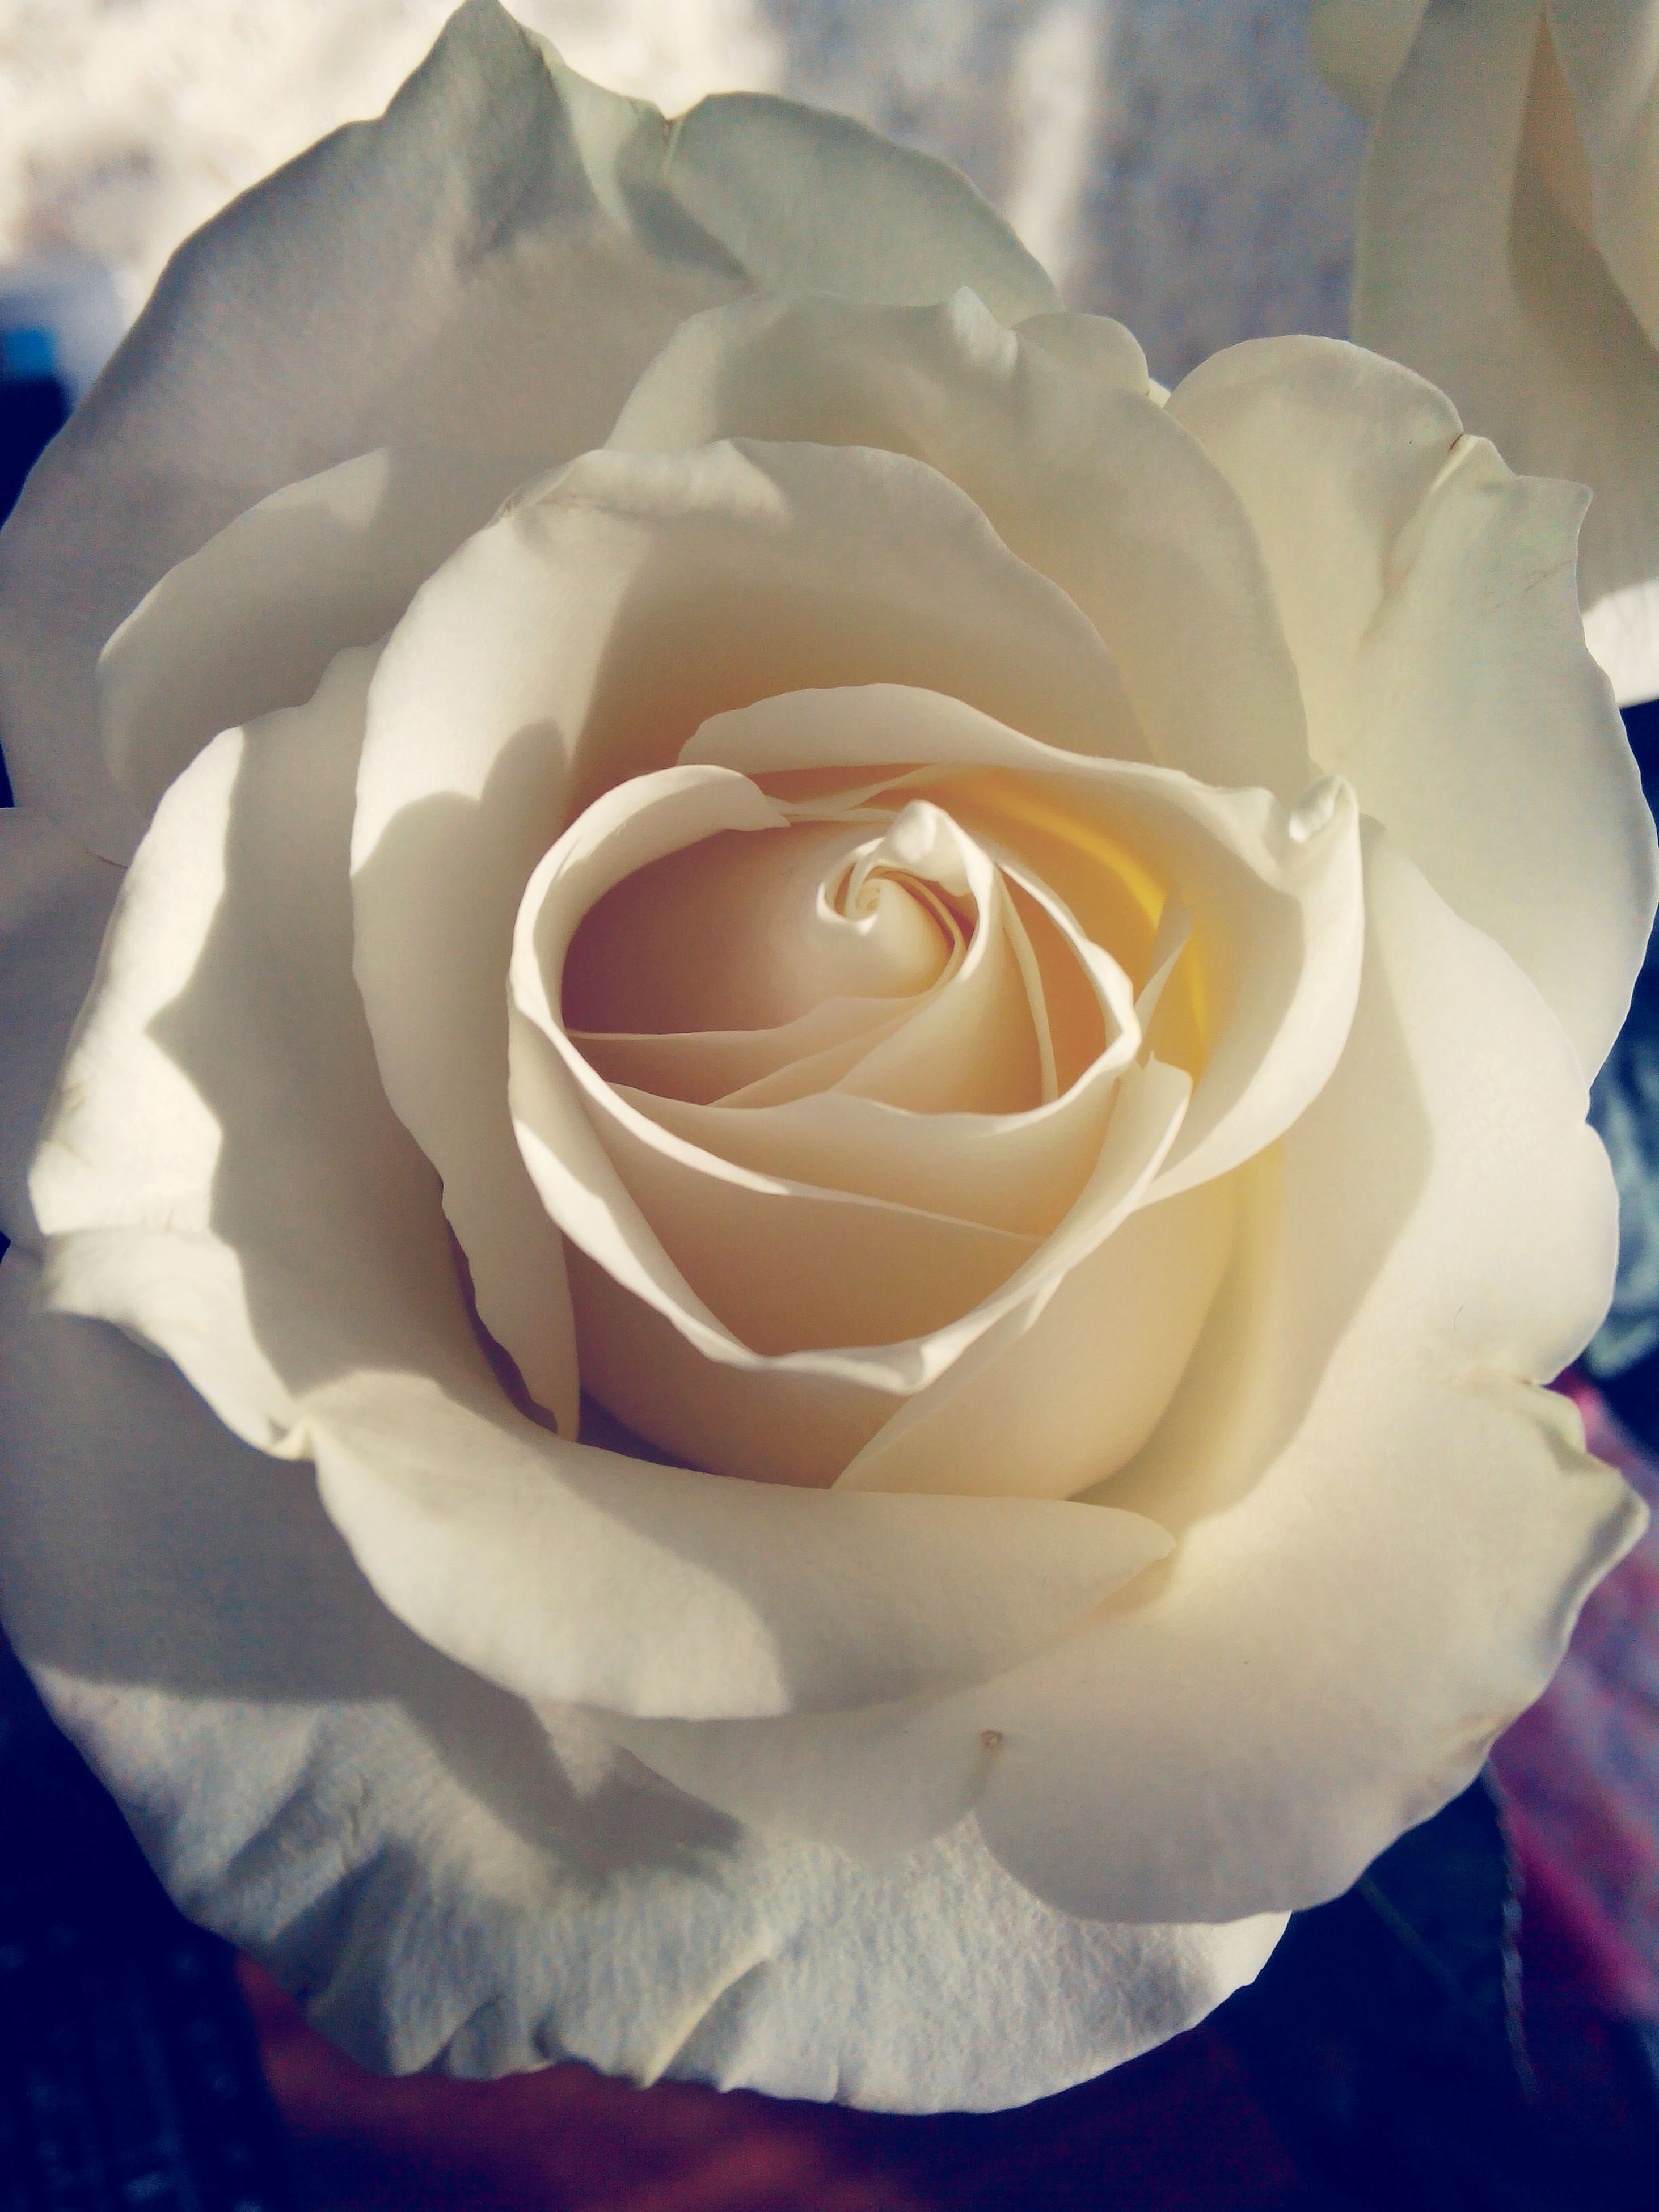 flower, rose - flower, petal, freshness, flower head, fragility, close-up, beauty in nature, rose, single flower, single rose, nature, white color, growth, blooming, focus on foreground, no people, indoors, high angle view, in bloom